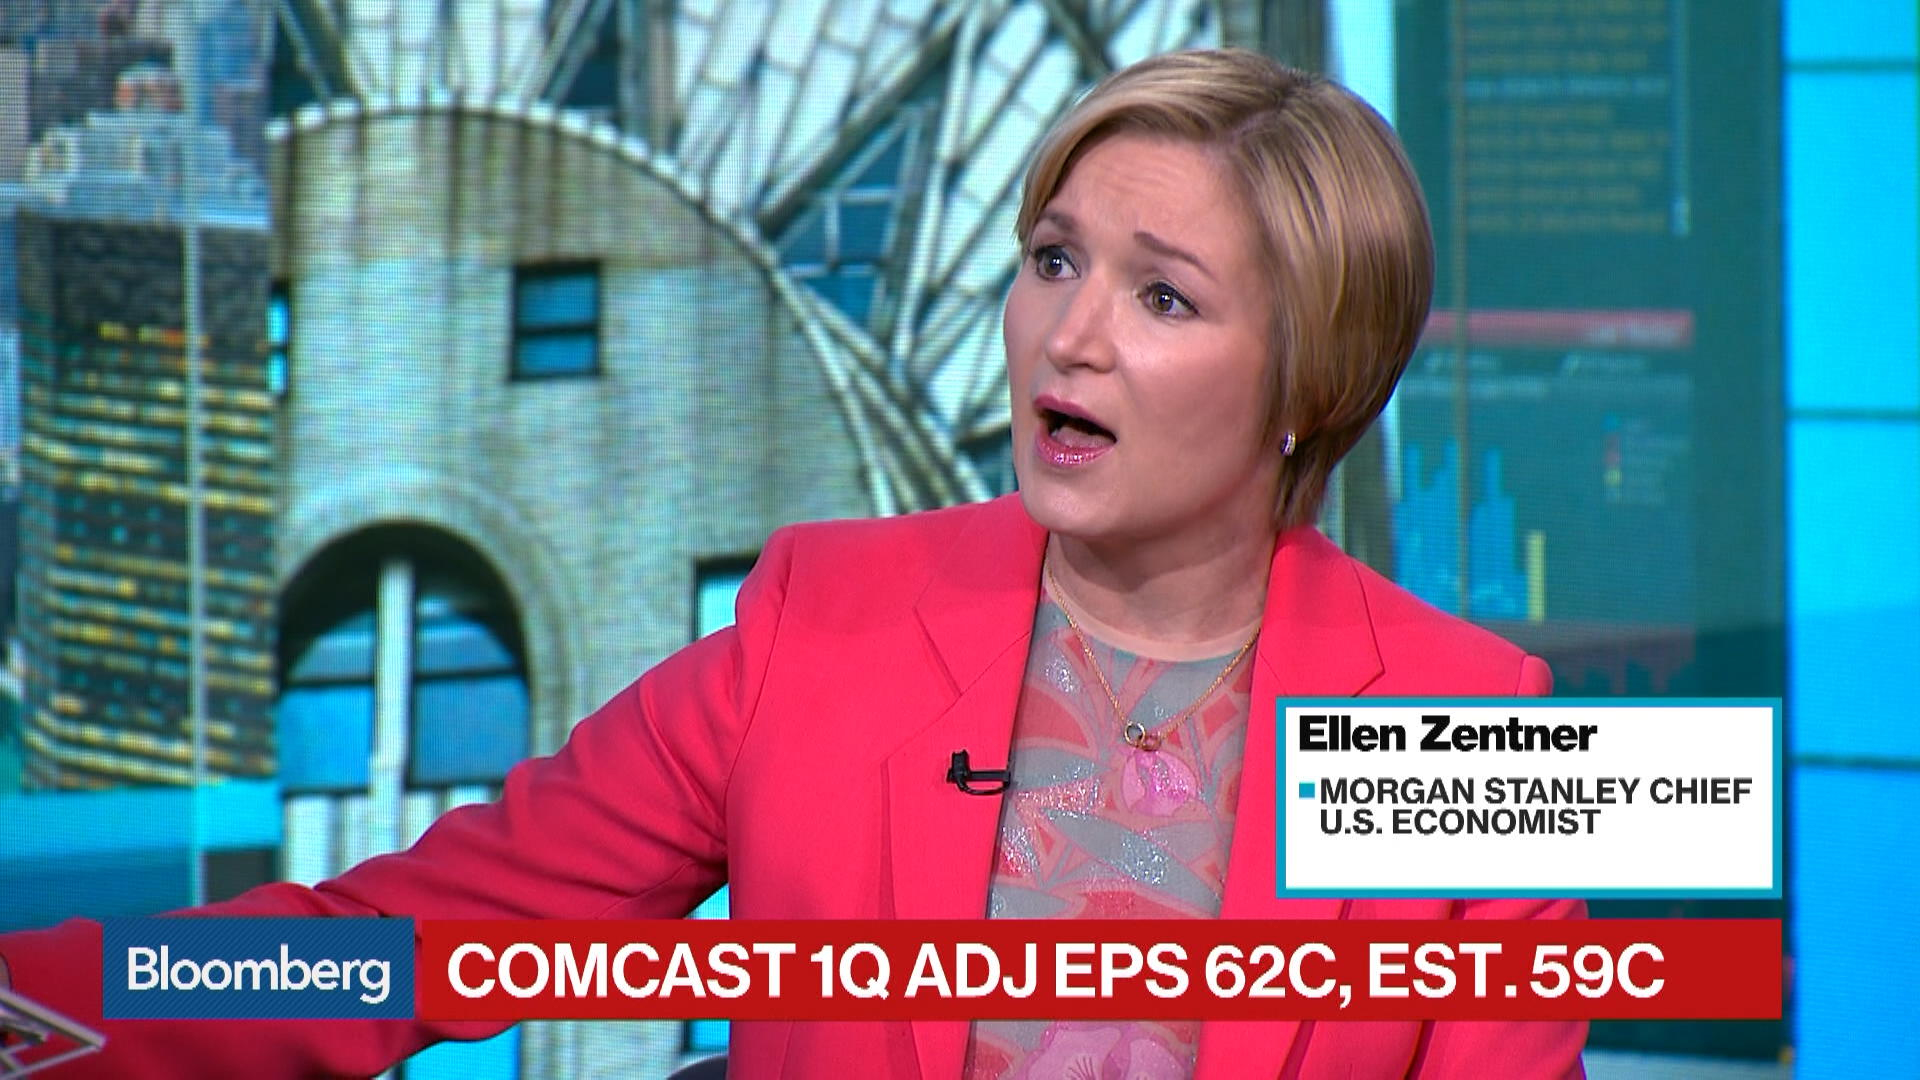 Morgan Stanley S Zentner Says Inflation Moving Higher